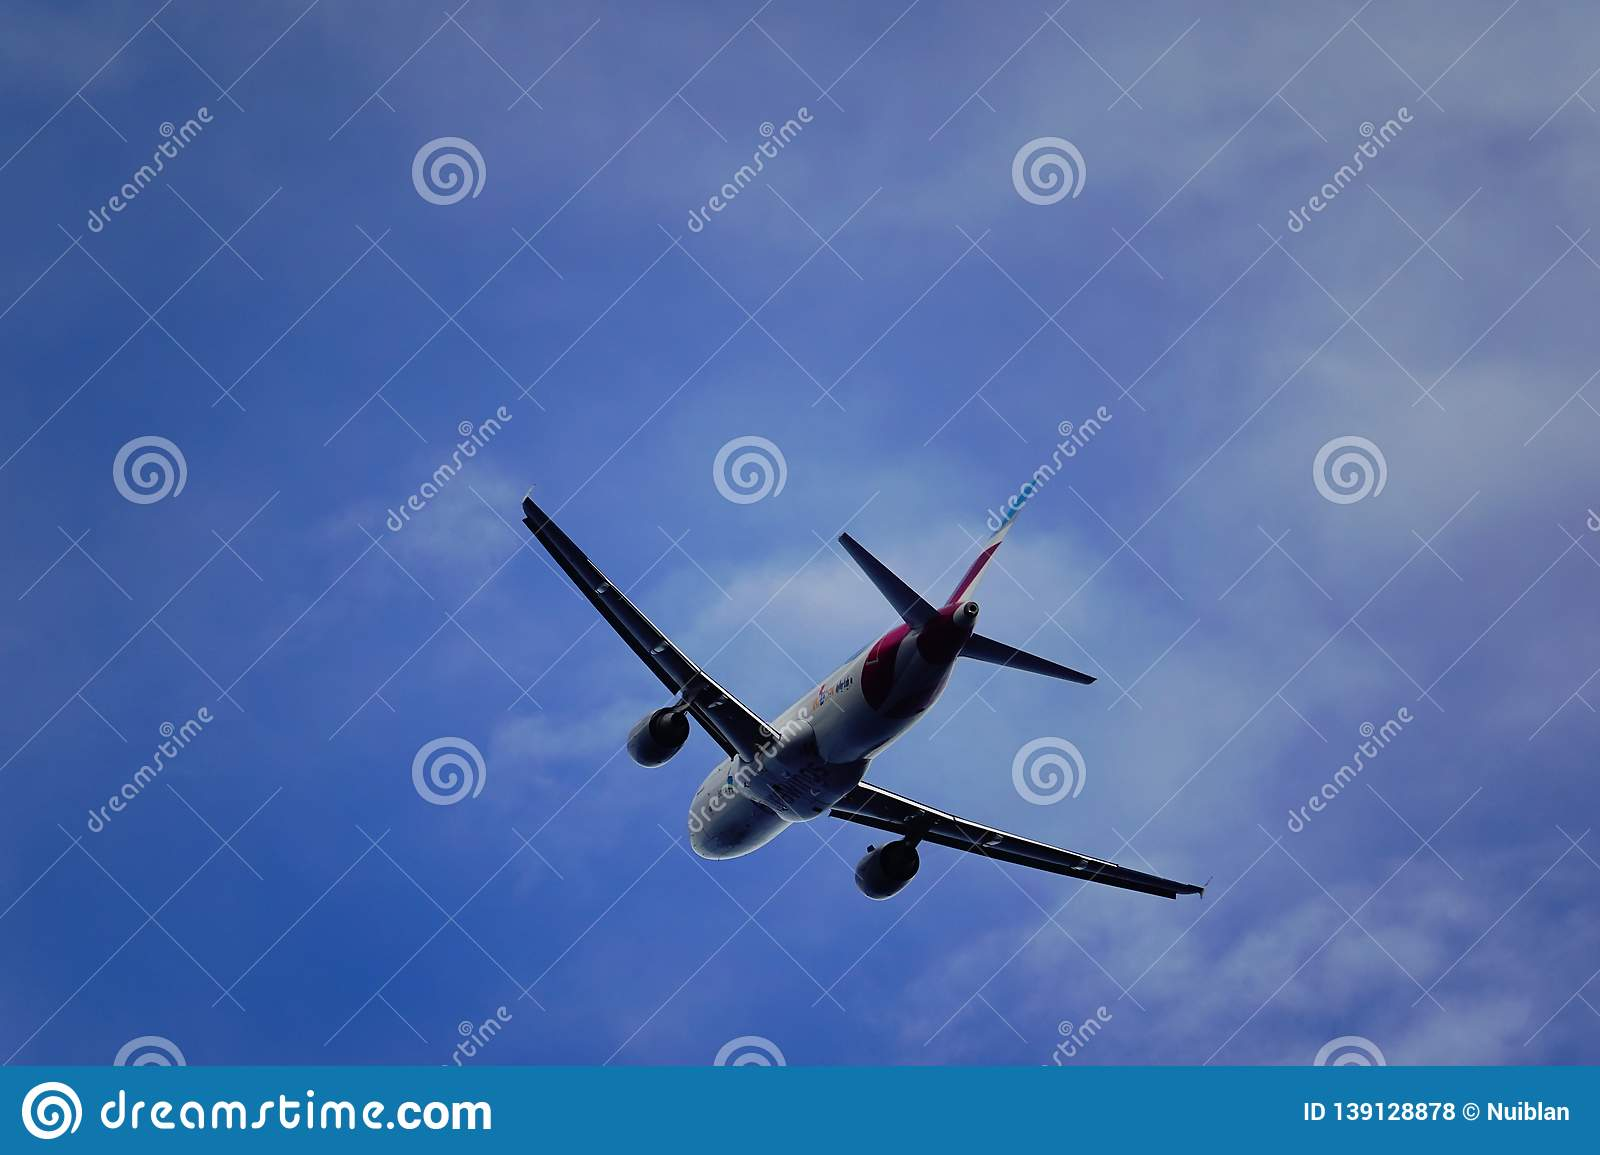 Santa Cruz de La Palma, Canary Islands, Spain; January 12th 2019: Eurowings airplane taking off La Palma Airport